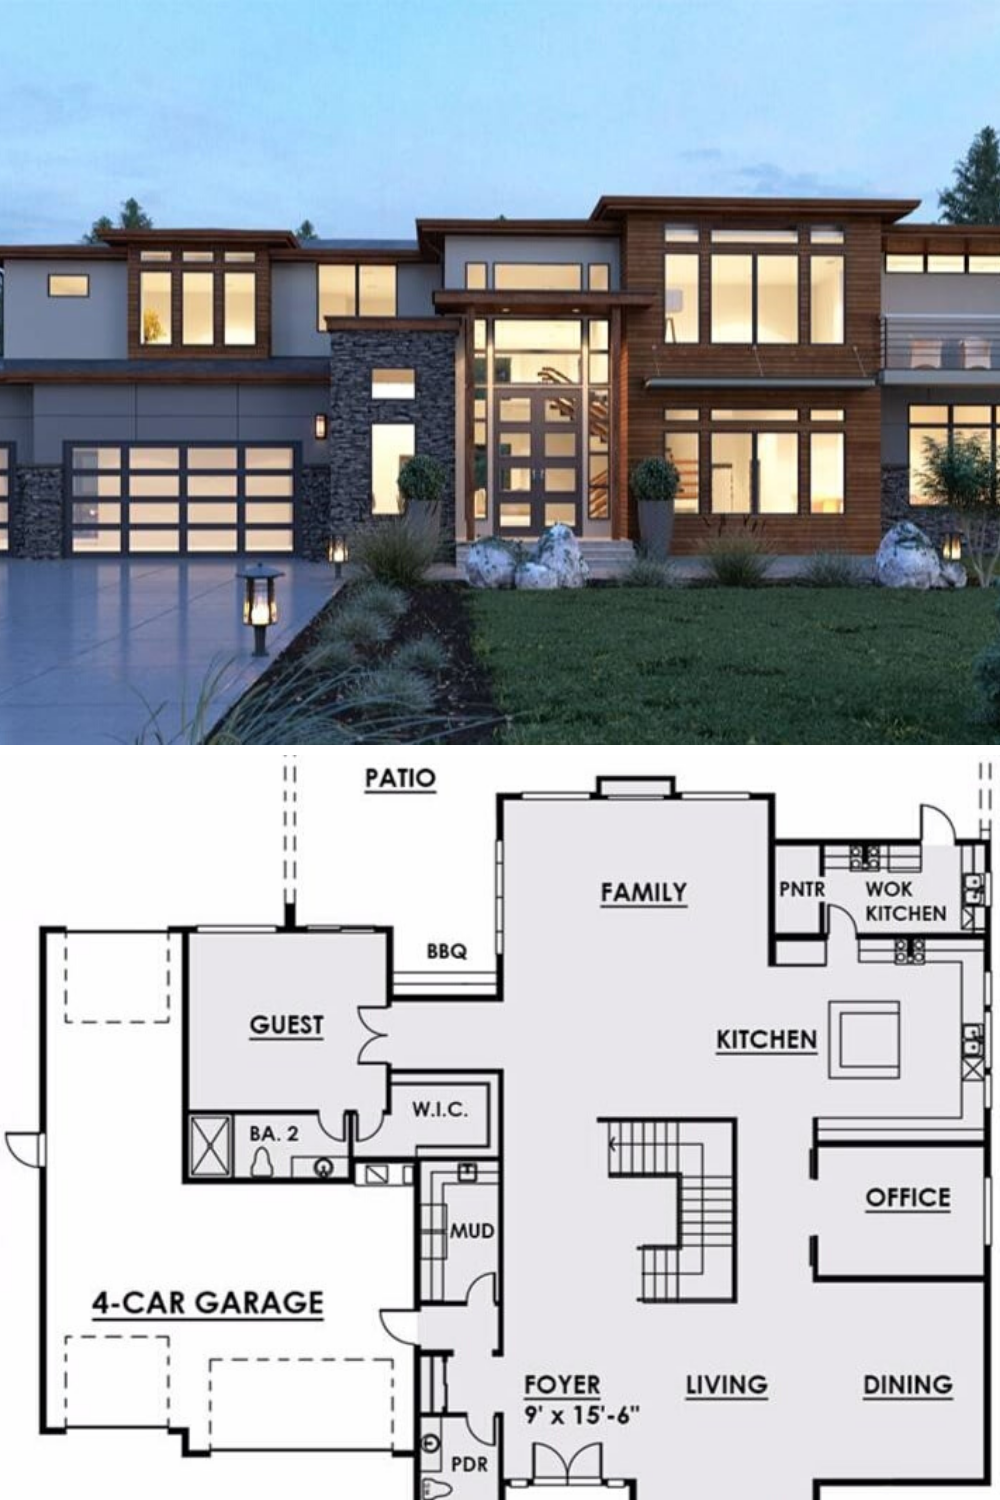 5 Bedroom Two Story Contemporary Style Home Floor Plan In 2020 Modern House Floor Plans Beach House Floor Plans Big Modern Houses